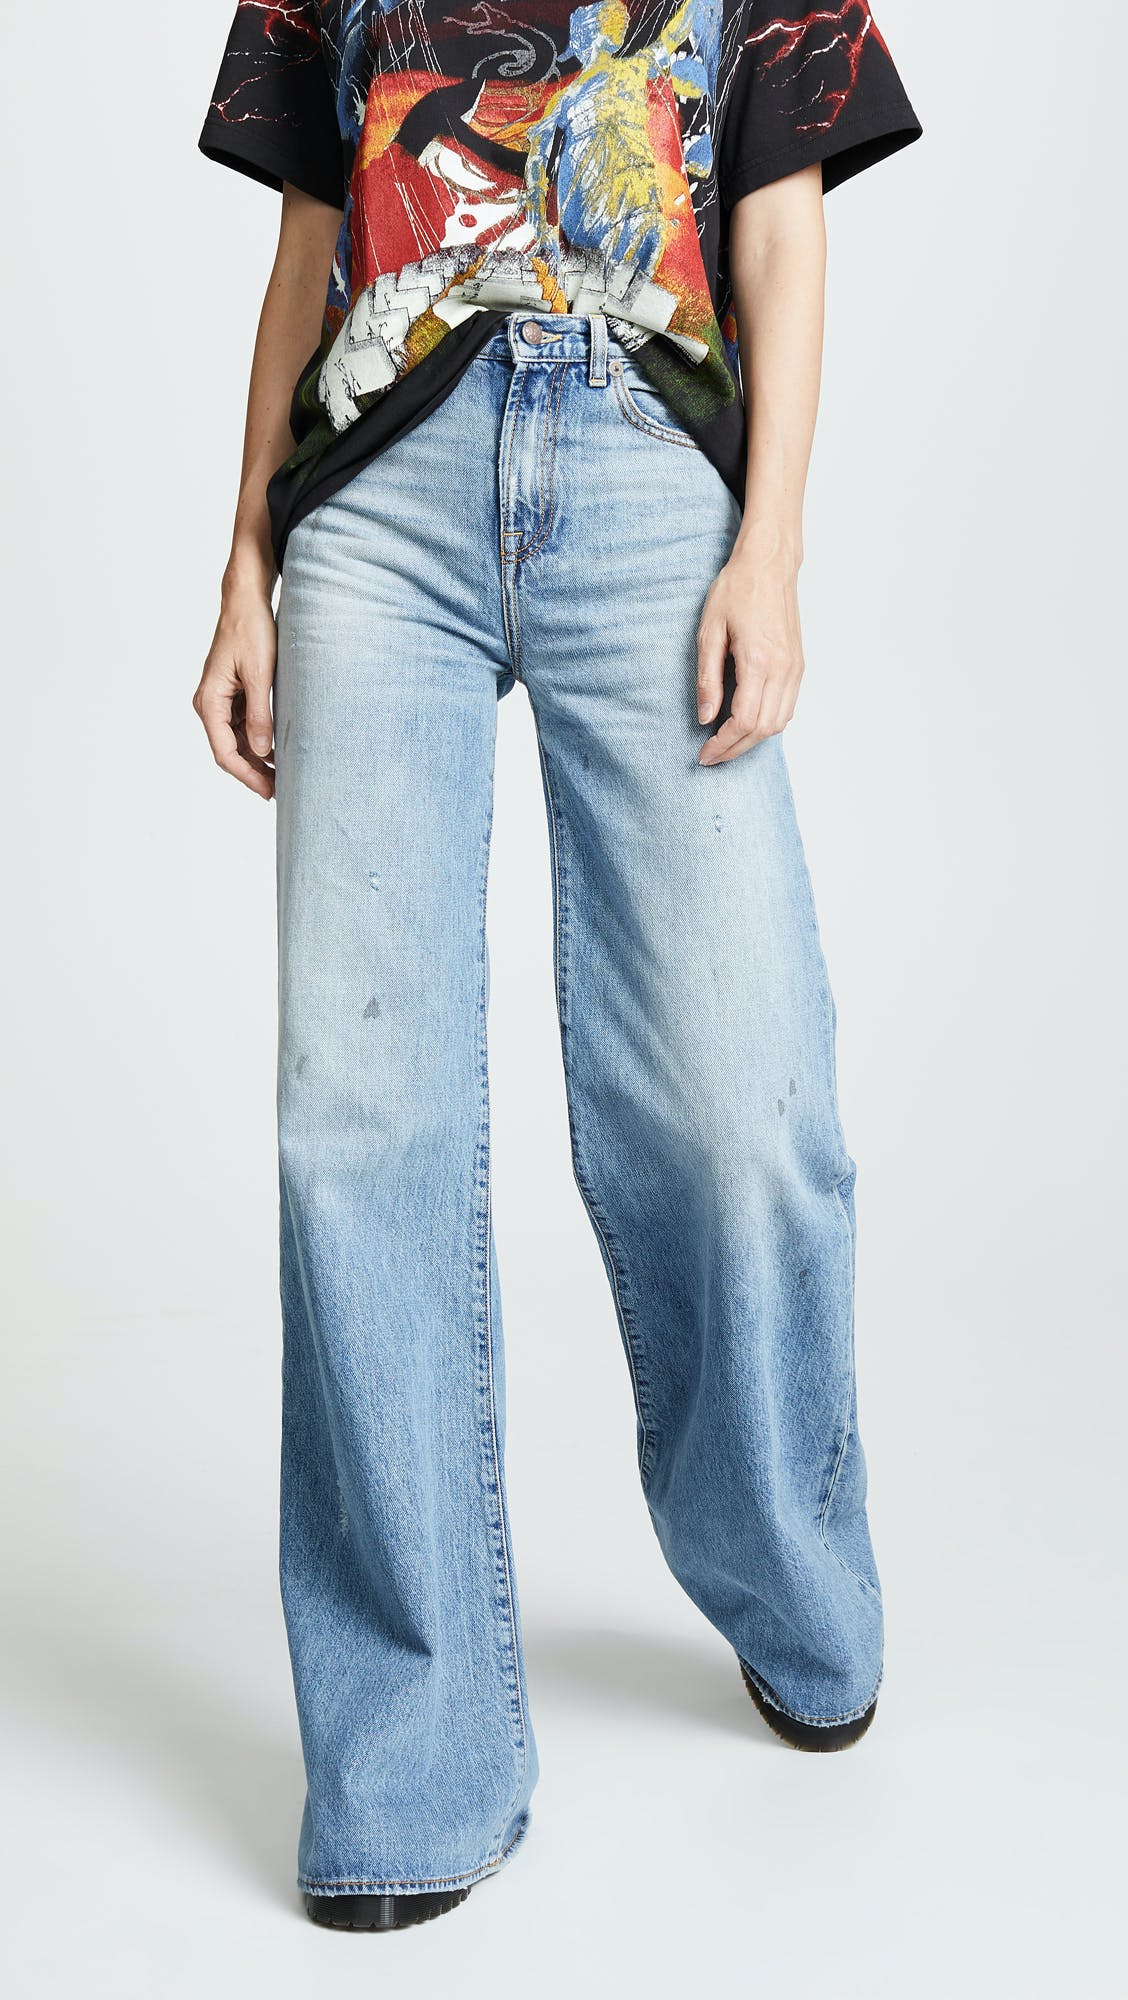 r13, r13 jeans, high rise jeans, high waisted jeans, wide leg jeans, long jeans, long jeans